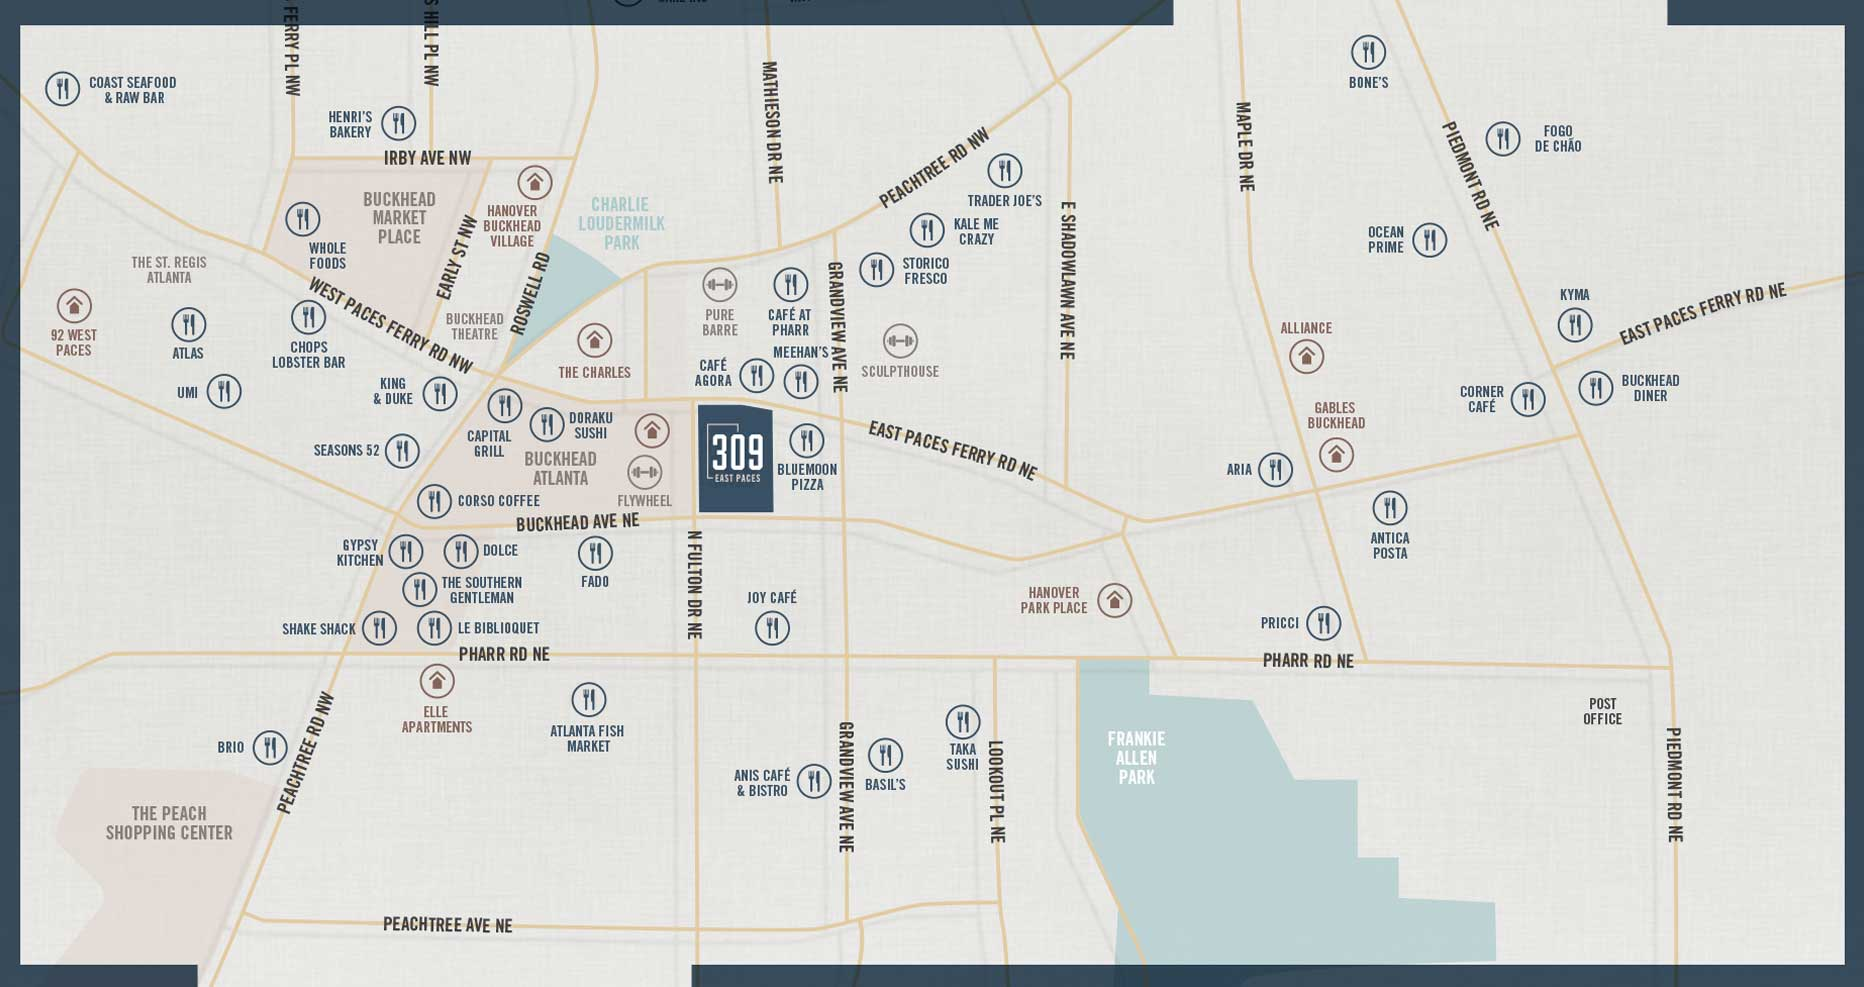 309 East Paces - Amenities Map